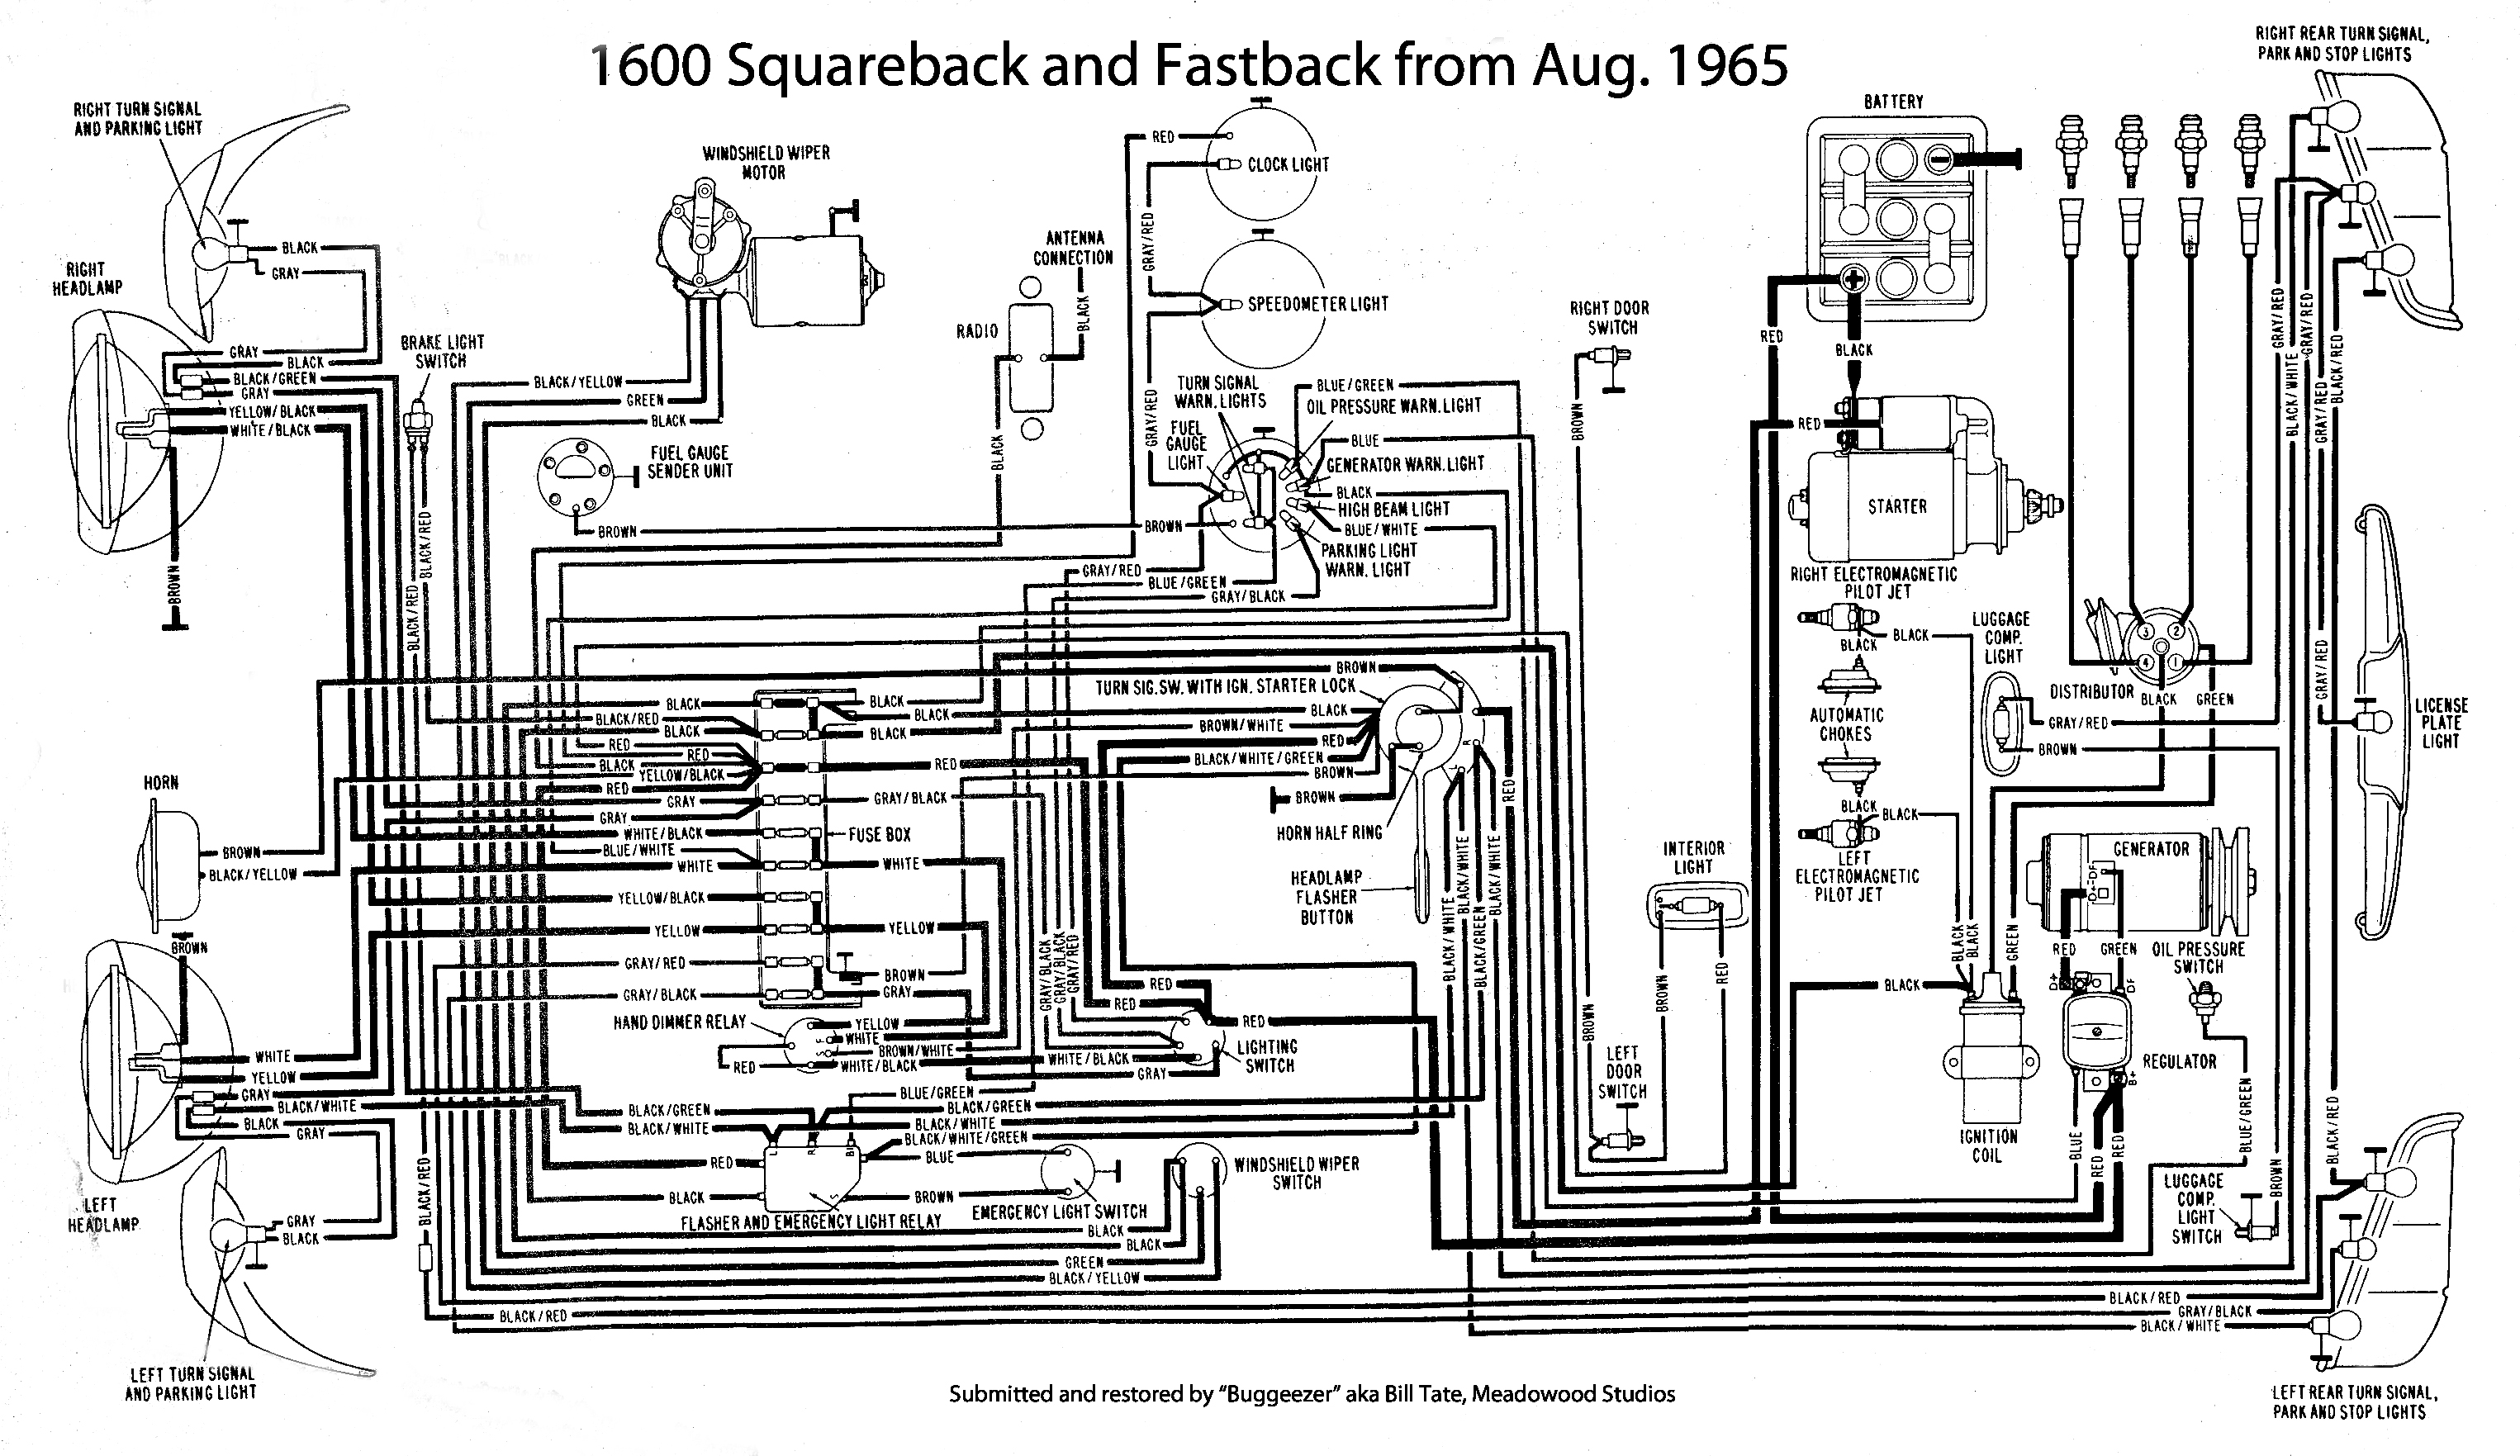 73 Vw Squareback Wiring Diagram Trusted Diagrams 74 Engine Thesamba Com Type 3 Rh Beetle Starter